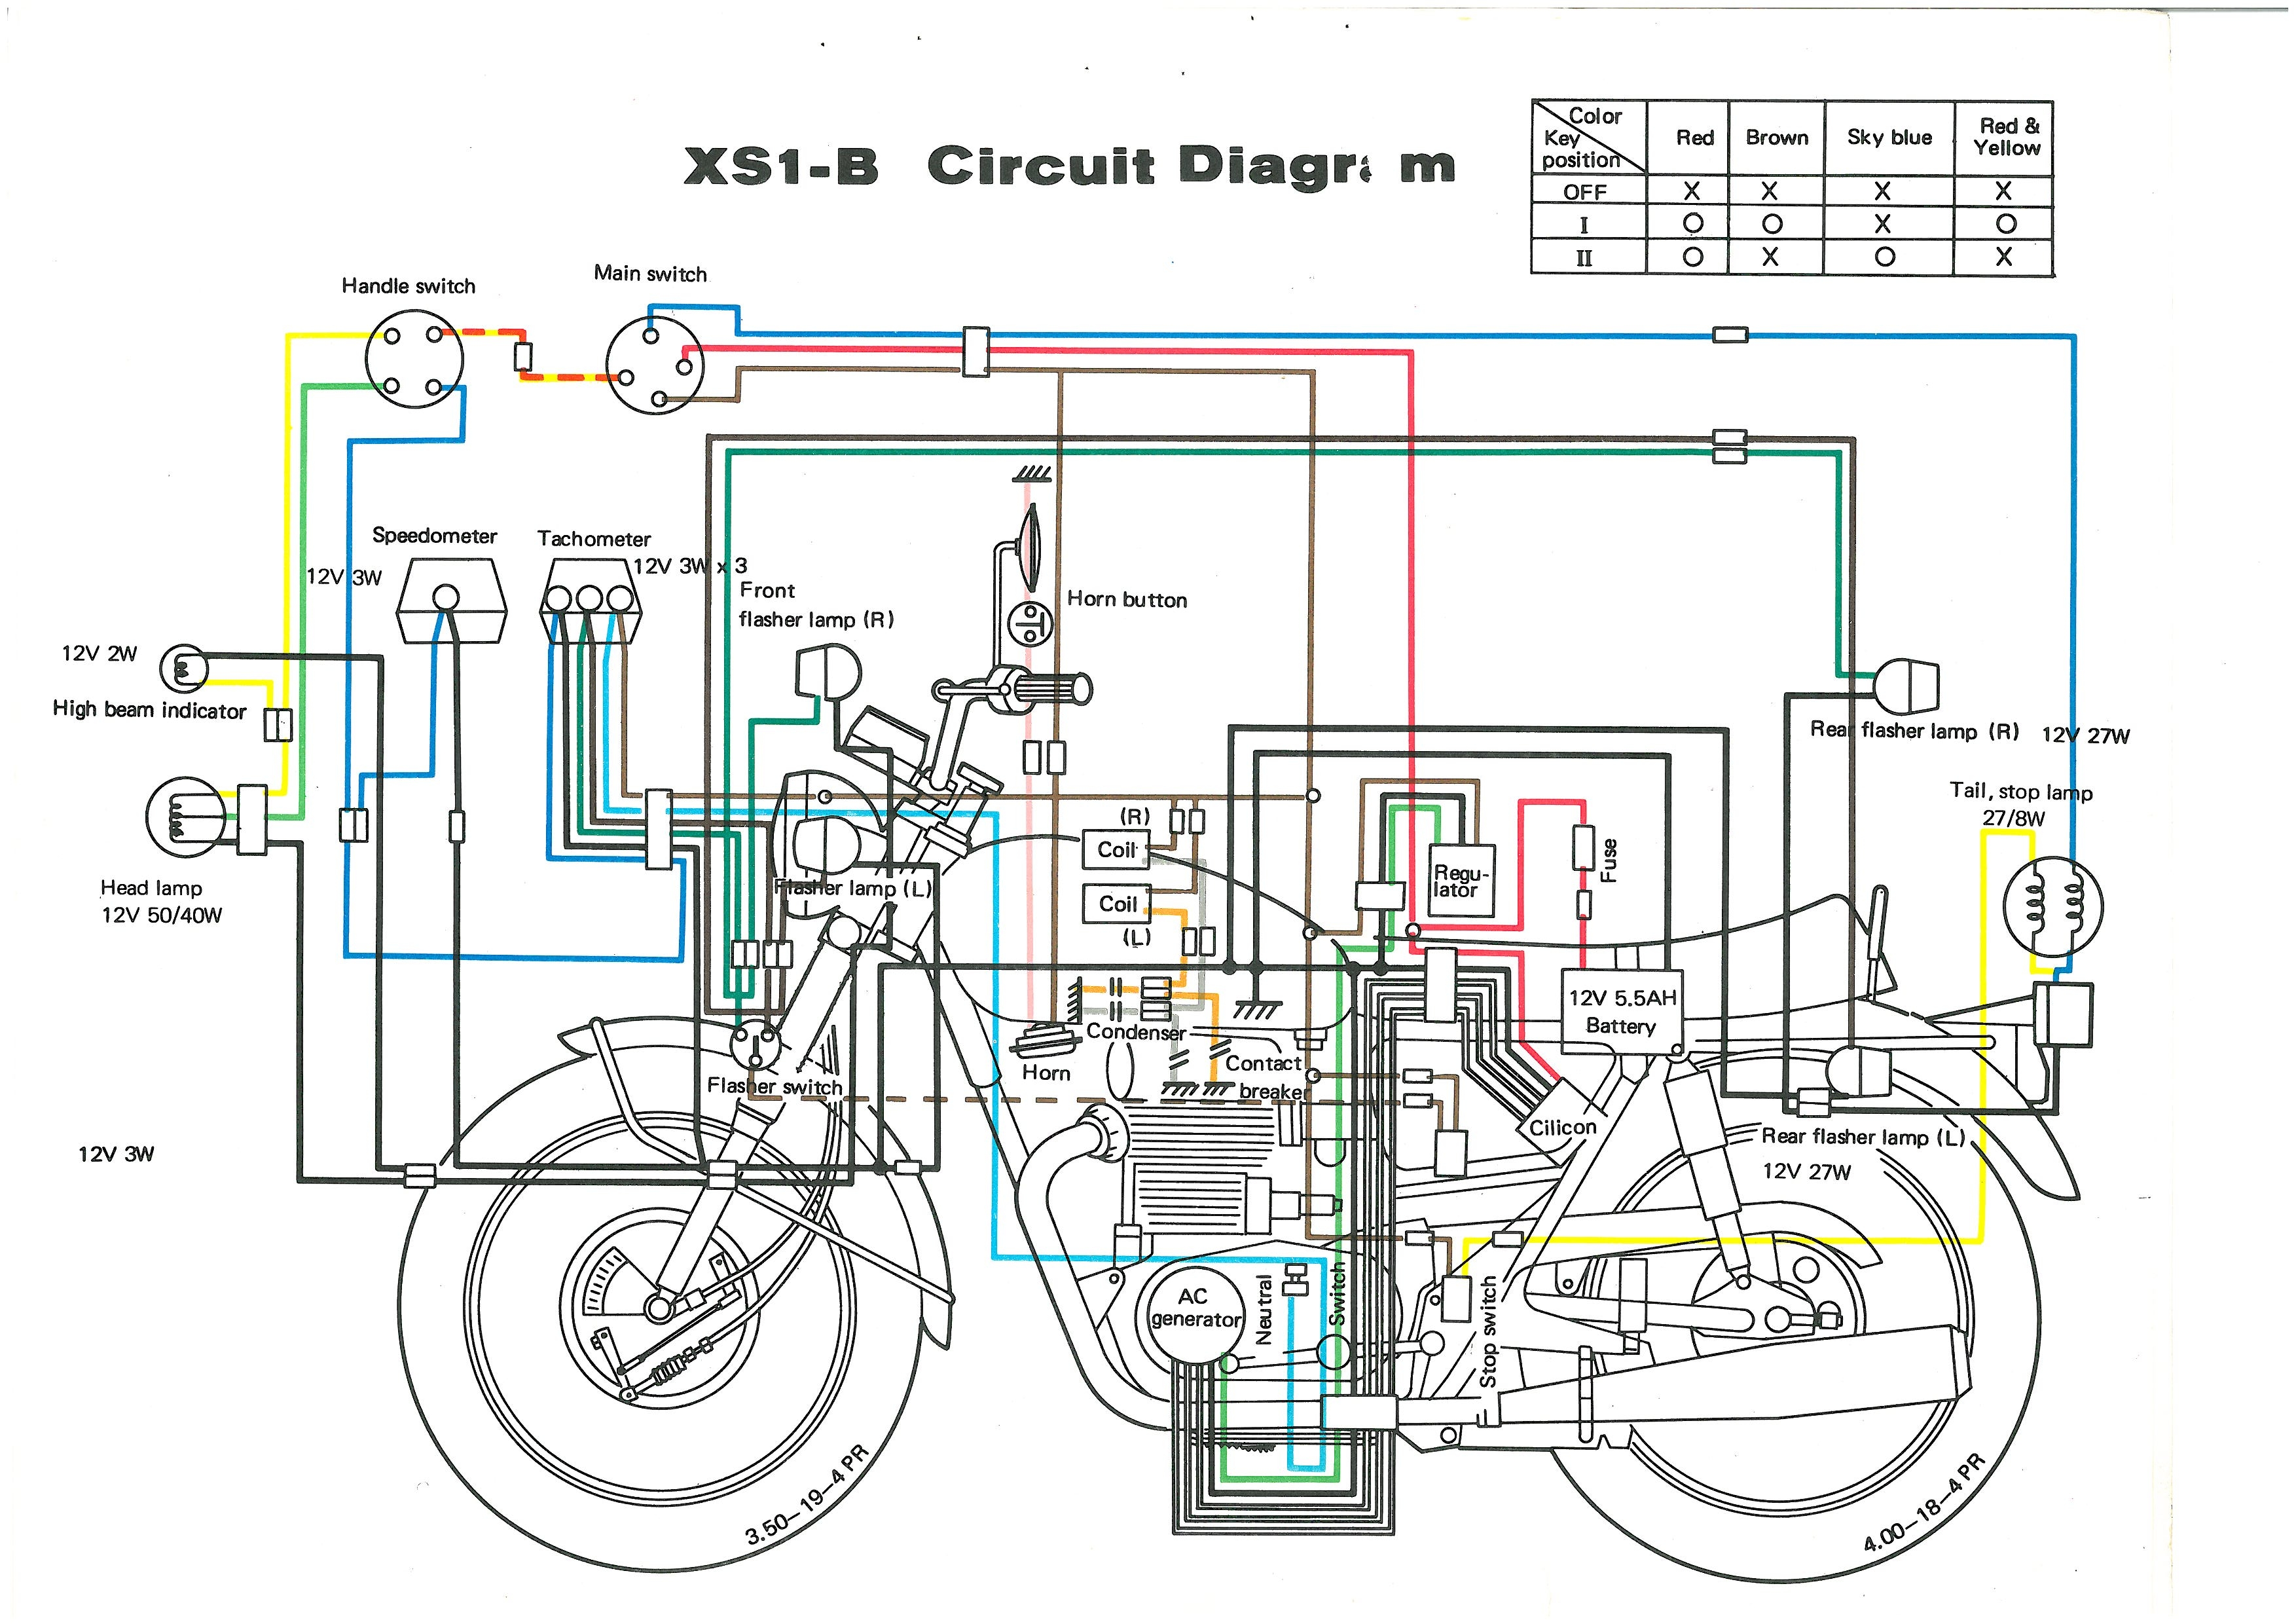 attractive xs1100 wiring diagram collection electrical diagram rh piotomar info Yamaha Rhino 450 Wiring Diagram Yamaha Raider Wiring-Diagram